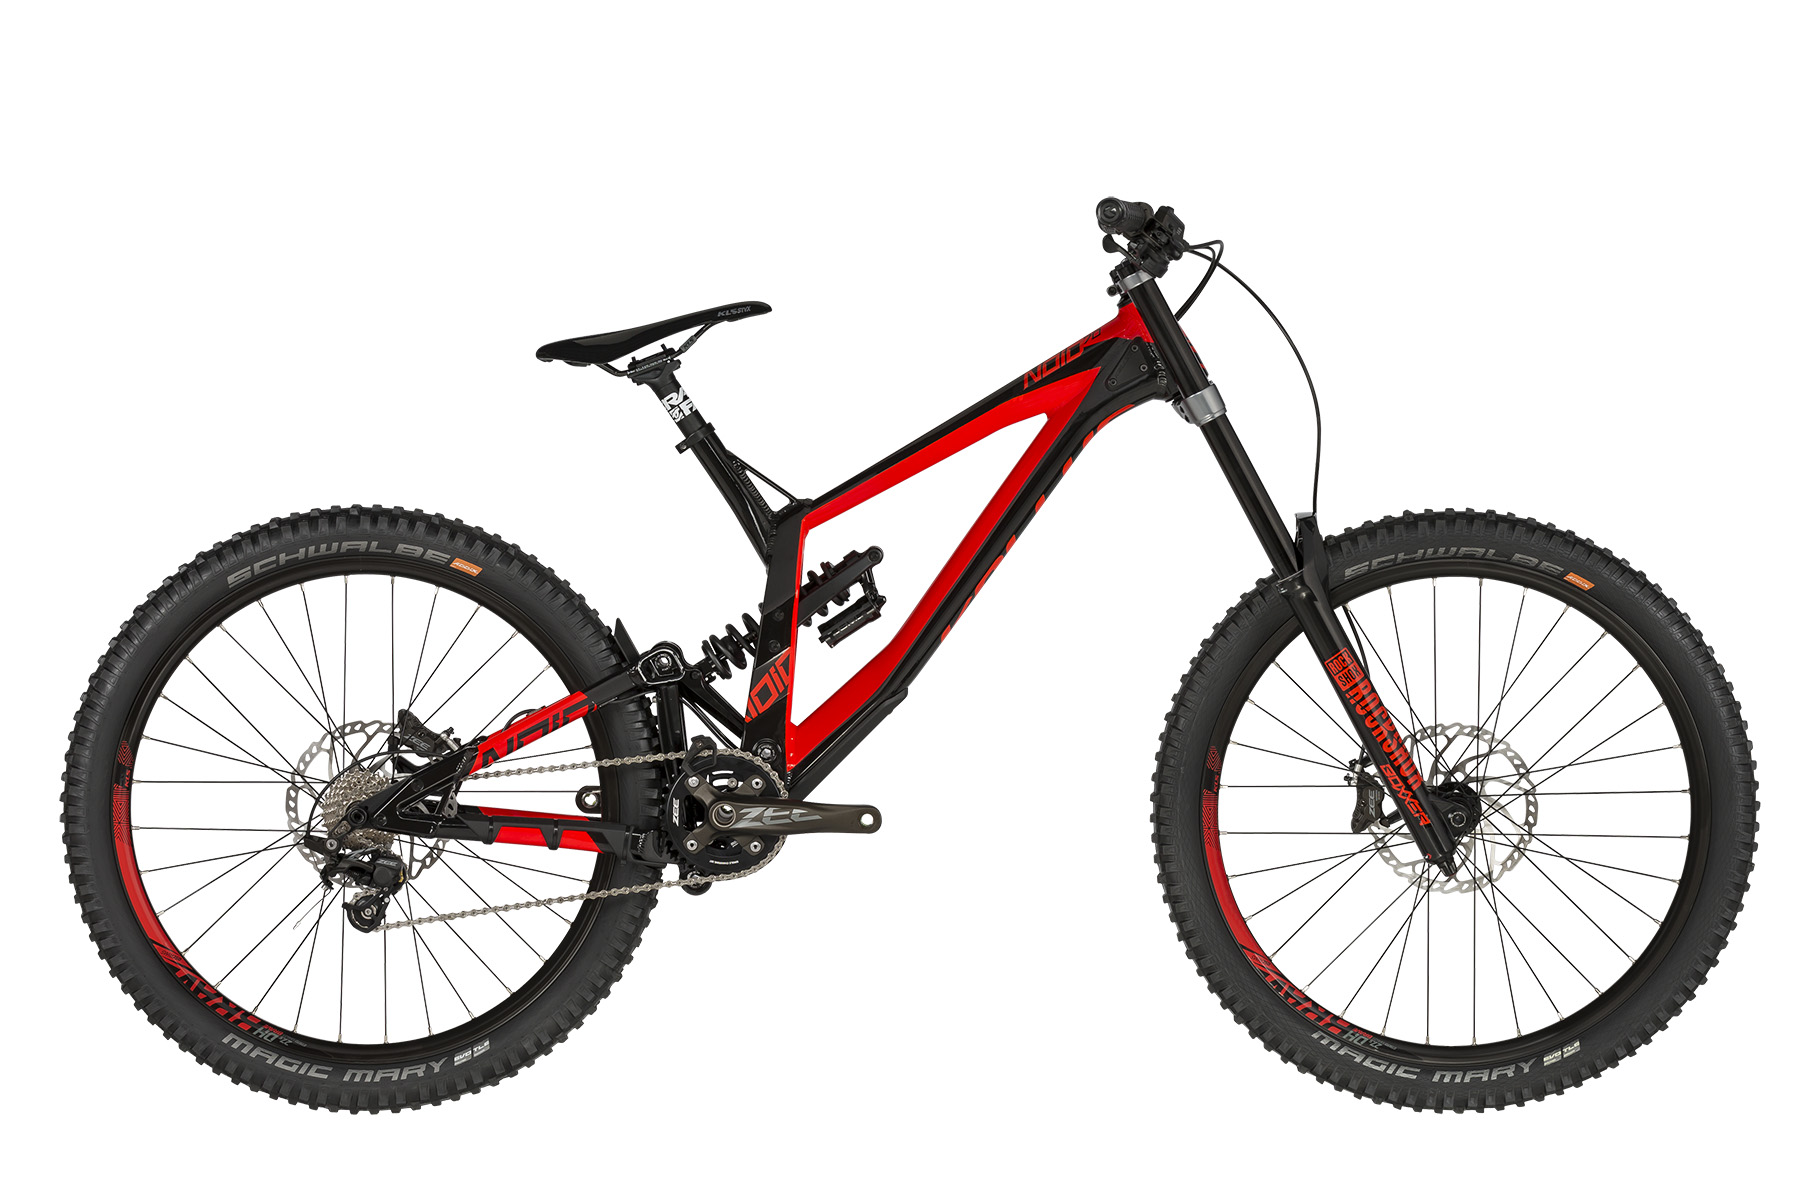 <strong>Bicicleta full suspension </strong>cu telescop pe fataROCK SHOX Boxxer RC DebonAir (27.5) Boost, 200mm si telescop pe spateROCK SHOX Super Deluxe Coil R / Rapid Recovery (250x75mm).</p><p><strong>Bicicleta downhill cu echipare Shimano Zee</strong> de 10 viteze si frane hidraulice Shimano Zee.</p><p><strong>frame</strong>KELLYS Gravity DH 27.5 / Think Link suspension system, 205mm rear travel, internal routing, ISCG 05, 12x150mm thru axle<br /><strong>frame size</strong>M / L / XL<br /><strong>fork</strong>ROCK SHOX Boxxer RC DebonAir (27.5) Boost, 200mm, Charger RC Damper / Maxle Stealth 20mm thru axle<br /><strong>rear shock</strong>ROCK SHOX Super Deluxe Coil R / Rapid Recovery (250x75mm)<br /><strong>head parts</strong>FSA 1.5 integrated<br /><strong>b.b.parts</strong>SHIMANO Press-Fit BB71-41A<br /><strong>crankset</strong>SHIMANO Zee M645 (34) - length 165mm<br /><strong>shifters</strong>SHIMANO Zee SL-M640 Rapidfire Plus (rear)<br /><strong>f/derailleur</strong>chain guide MOZARTT HXR, ISCG 05<br /><strong>r/derailleur</strong>SHIMANO Zee M640 (direct mount)<br /><strong>speed</strong>10<br /><strong>cassette sprocket</strong>SHIMANO CS-HG500-10 (11-25)<br /><strong>chain</strong>KMC X10 EL (106 links)<br /><strong>brakes</strong>SHIMANO Zee M640 Hydraulic Disc<br /><strong>brake rotors</strong>203mm front / 203mm rear<br /><strong>brake levers</strong>SHIMANO Zee BL-M640<br /><strong>hubs</strong>NOVATEC DH Disc (20x110mm / 12x150mm / 32 holes)<br /><strong>thru axle</strong>ROCK SHOX Maxle Stealth 20x110mm front / Mr.CONTROL 12x150mm rear<br /><strong>rims</strong>KLS Brave Disc 584x23 (32 holes)<br /><strong>spokes</strong>stainless steel black<br /><strong>tires</strong>SCHWALBE Magic Mary 60-584 (27.5x2.35) SnakeSkin, Tubeless Easy, ADDIX Soft, folding<br /><strong>stem</strong>RACE FACE Chester DM 35 - direct mount / bar bore 35mm<br /><strong>handlebar</strong>RACE FACE Aeffect R 35 RiseBar - diam 35mm / rise 20mm / width 780mm<br /><strong>grip